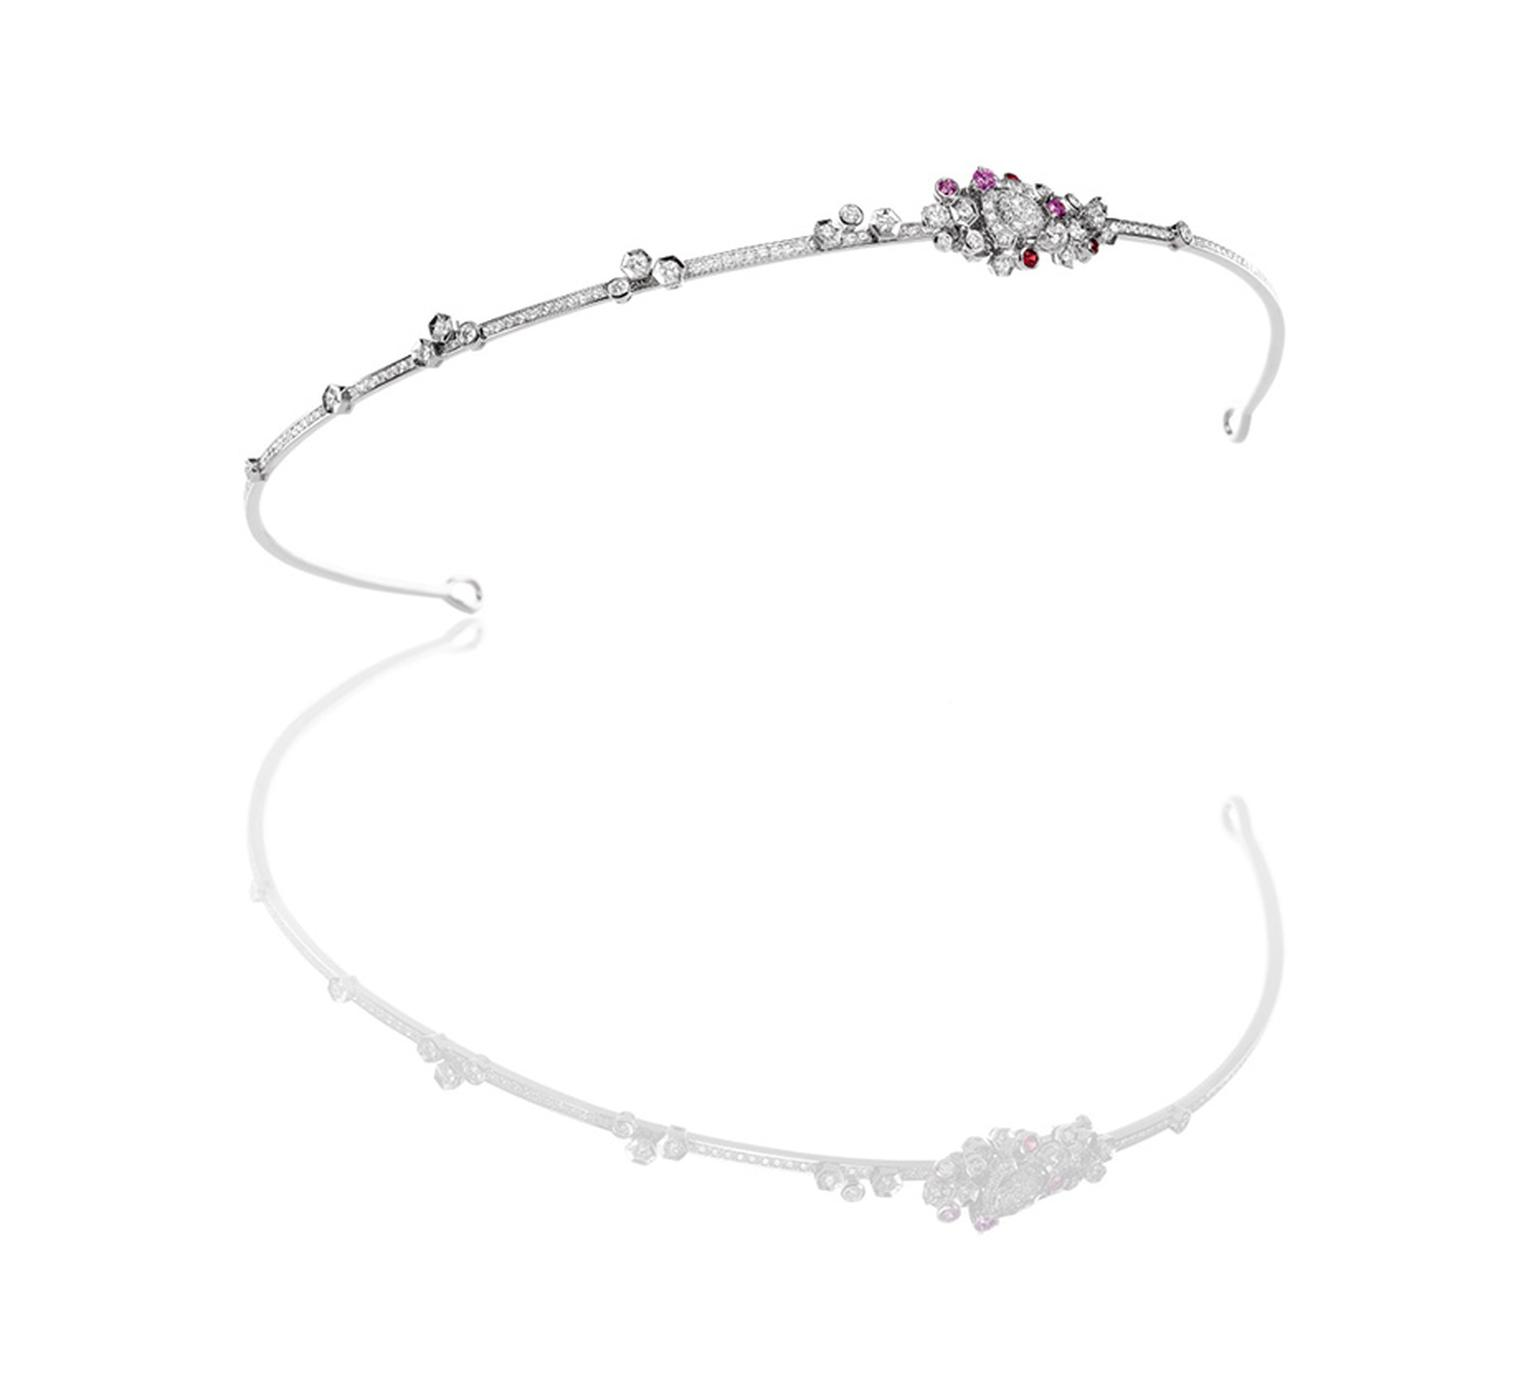 Chaumet Bee My Love tiara in white gold, with diamonds, red spinels and pink sapphires. The bee brooch is detachable